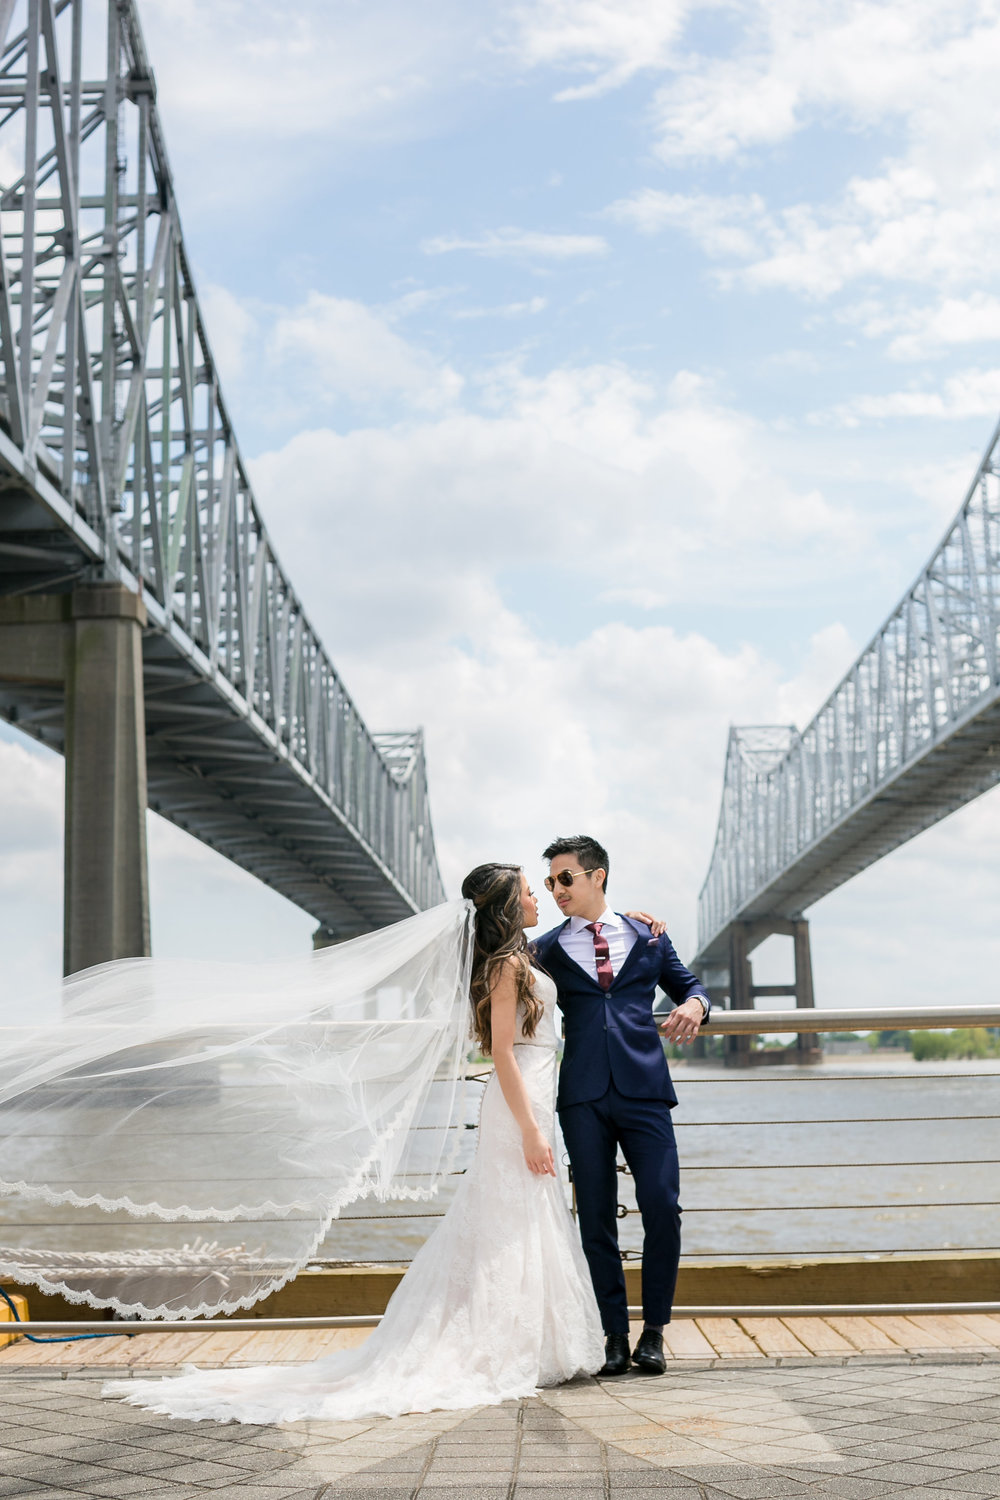 New Orleans Wedding Photography Destination David Kim-12.jpg